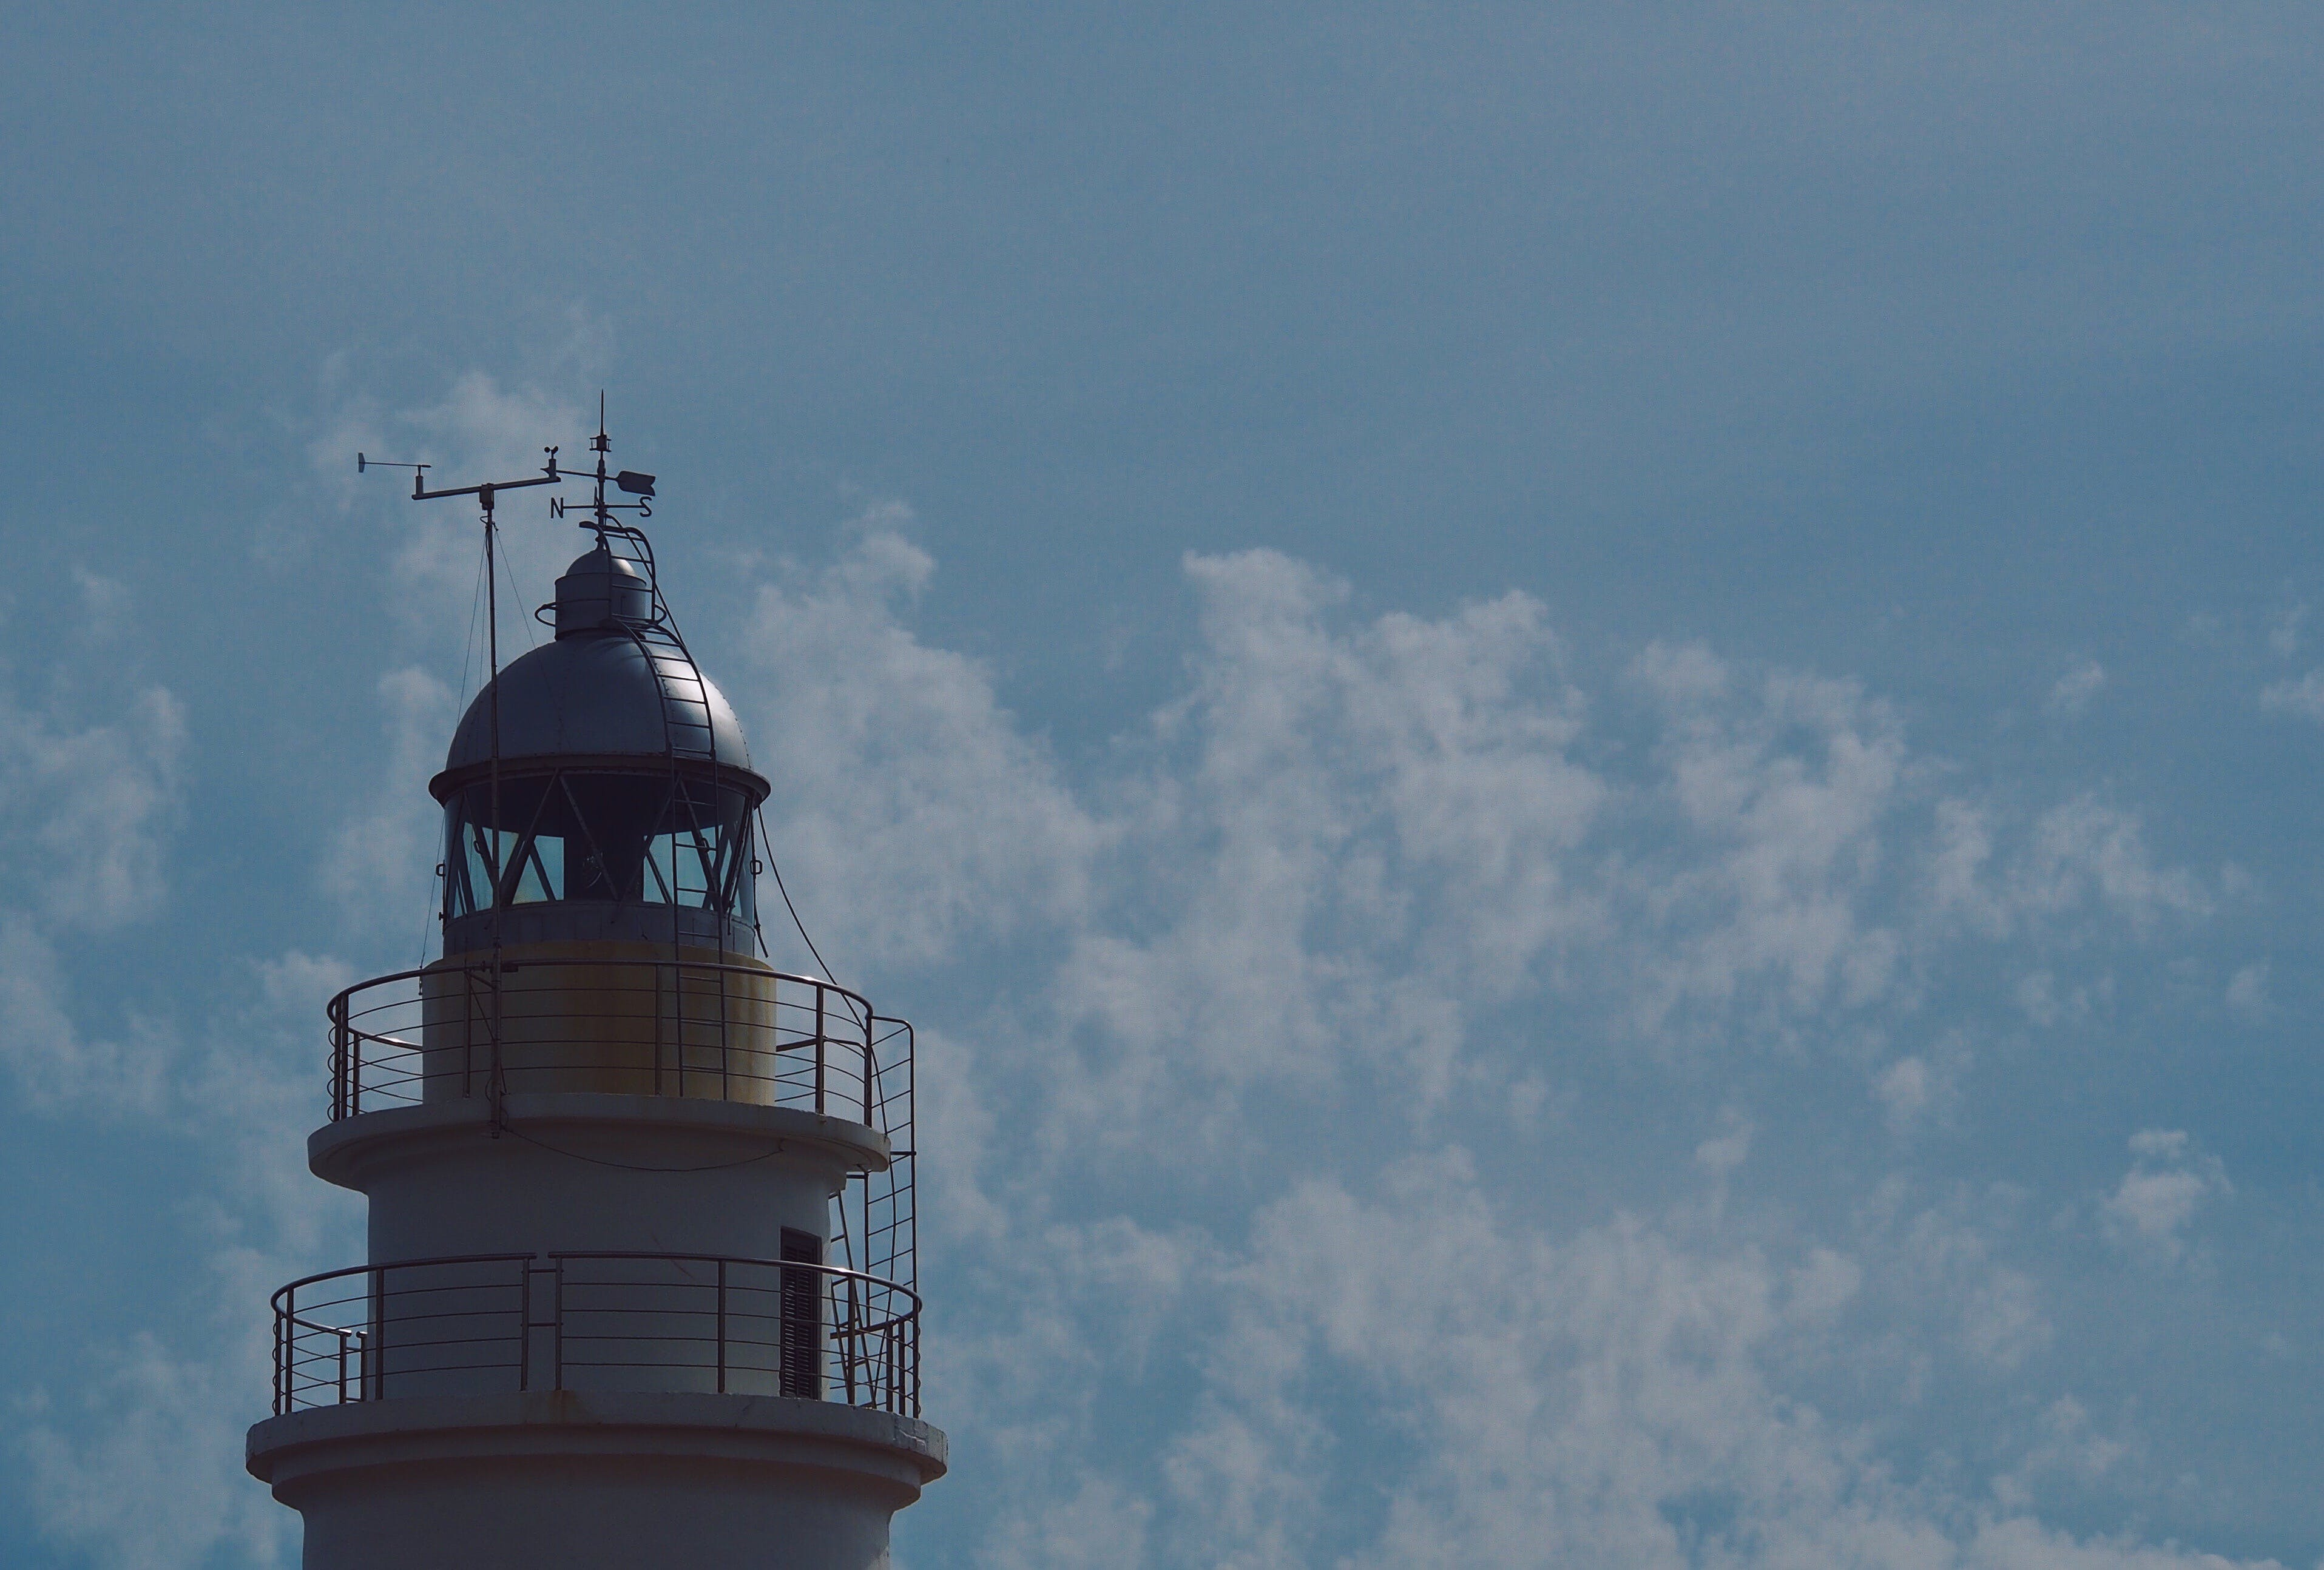 White Lighthouse Under Blue Sky and White Clouds